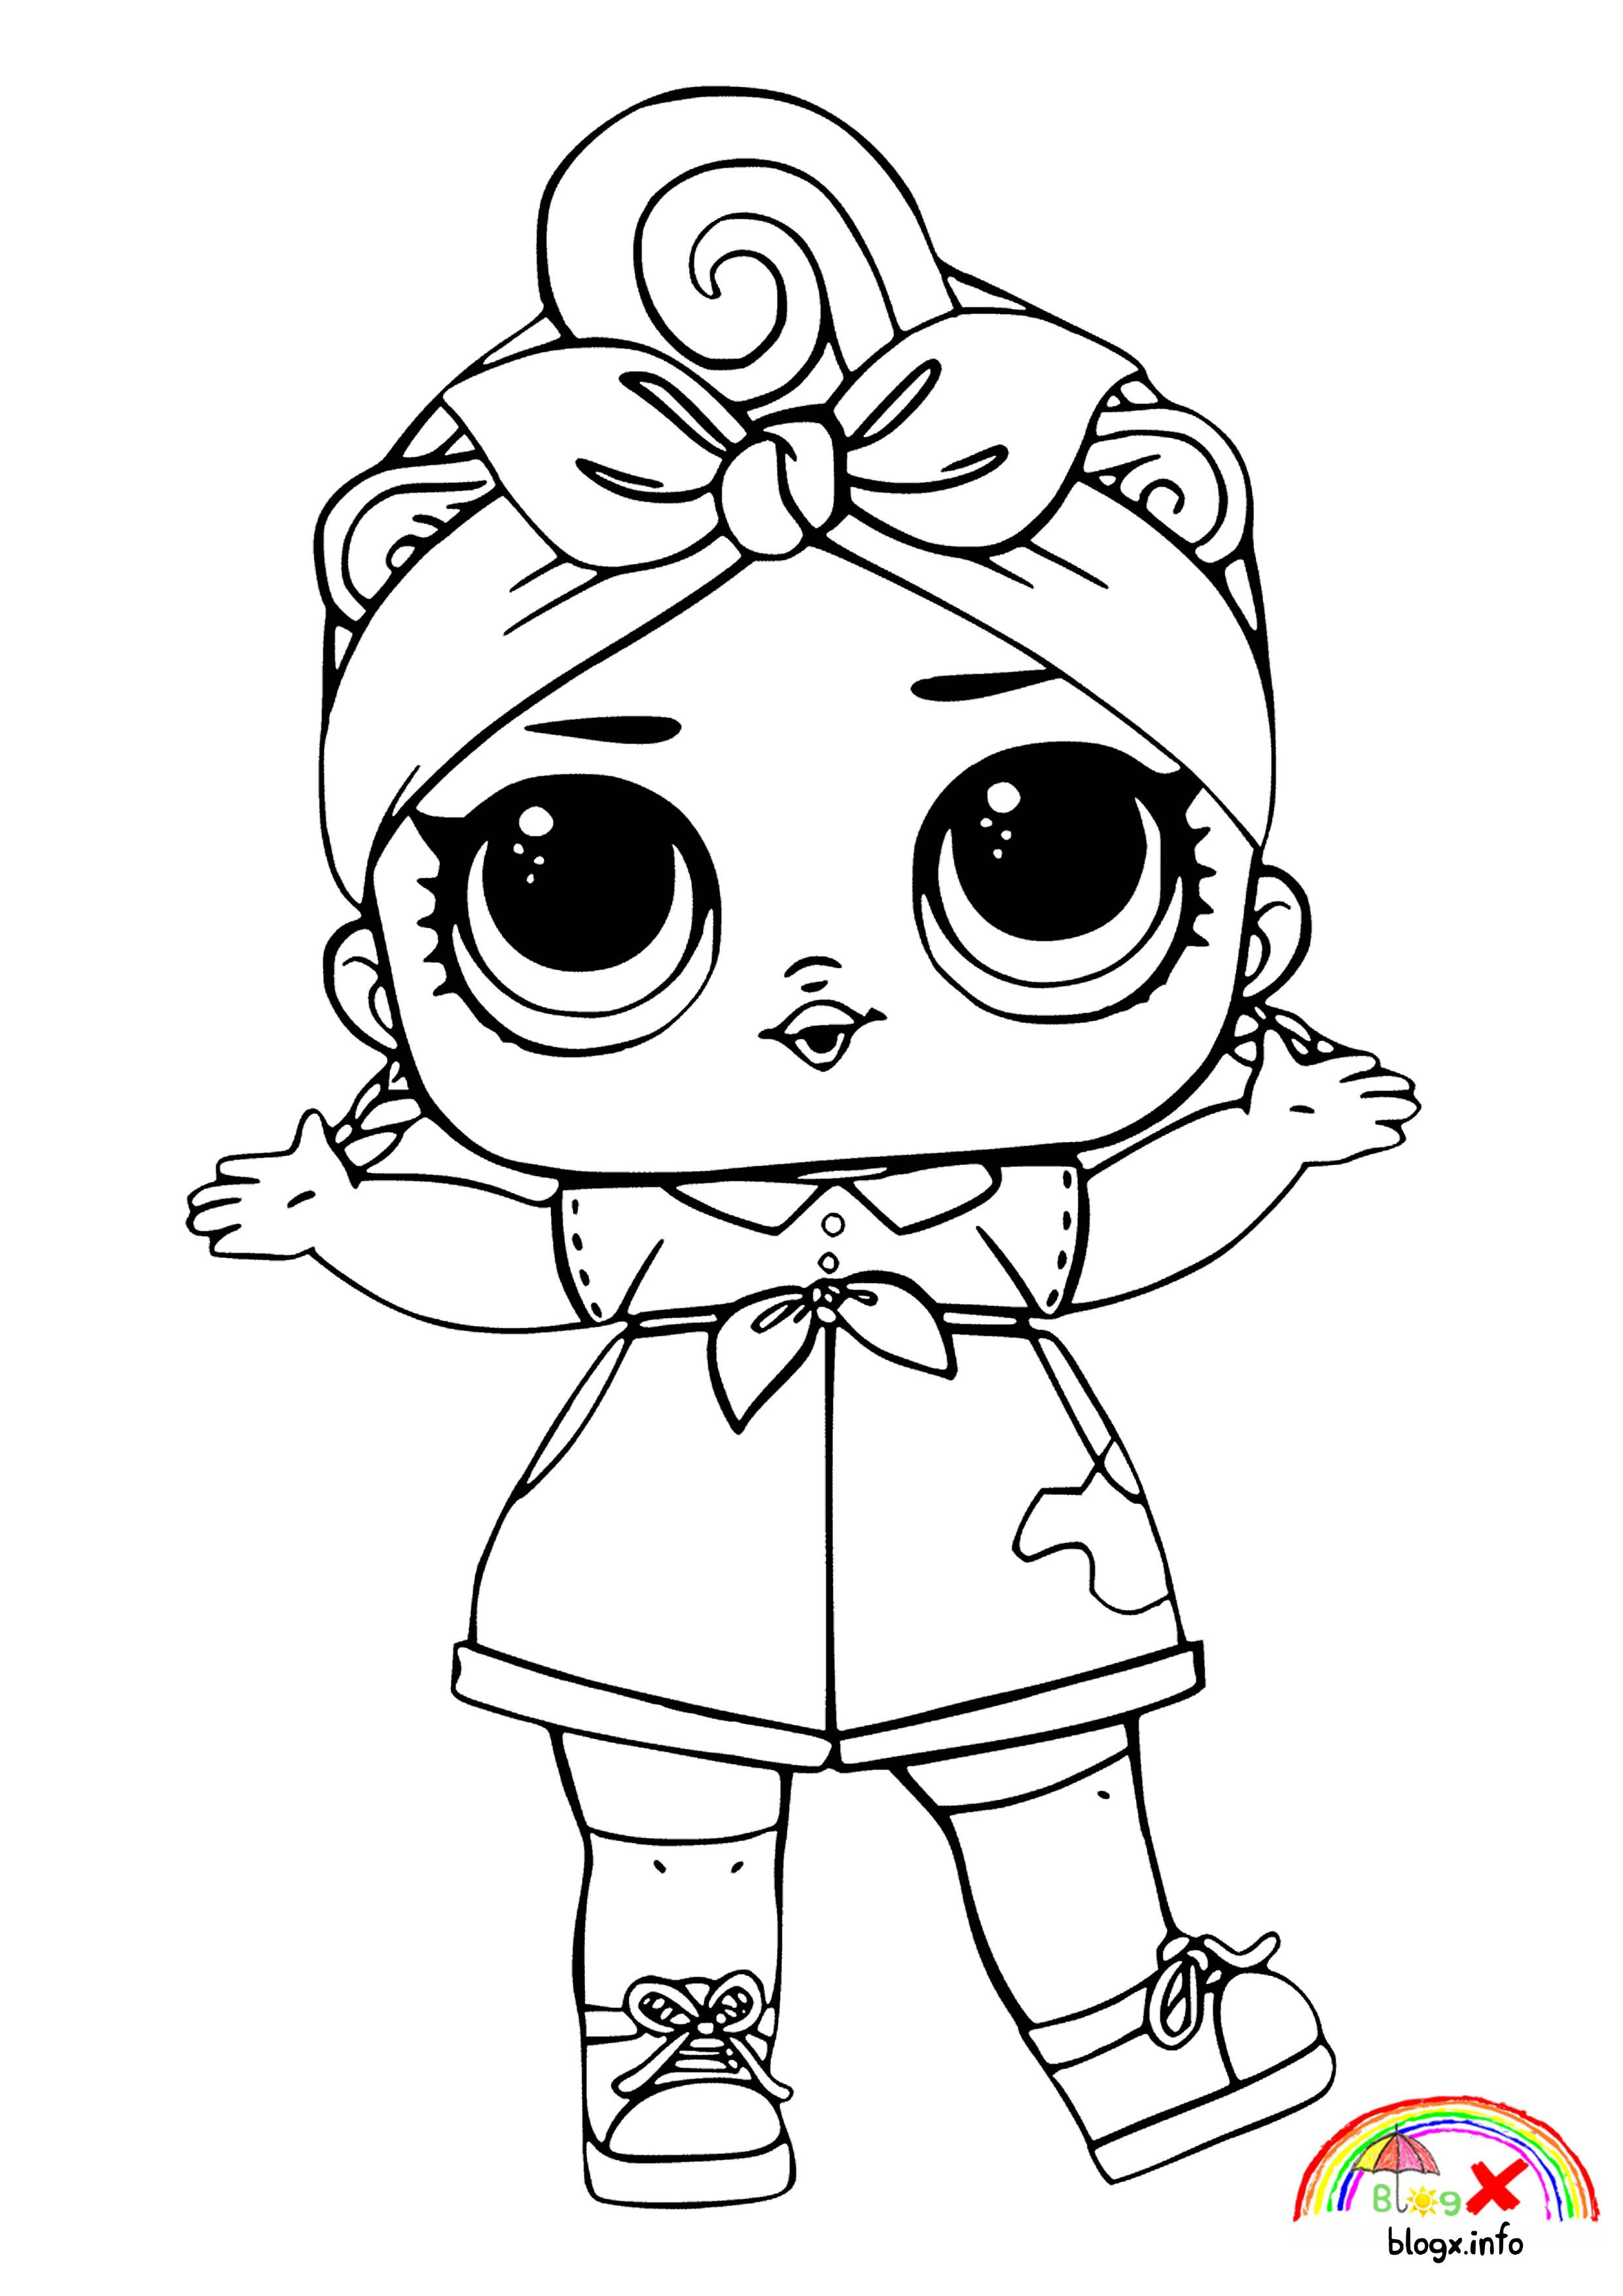 Yuhuuu Children Will Definitely Love This One Picture Develop Children S Creativity And Im Unicorn Coloring Pages Cool Coloring Pages Cartoon Coloring Pages